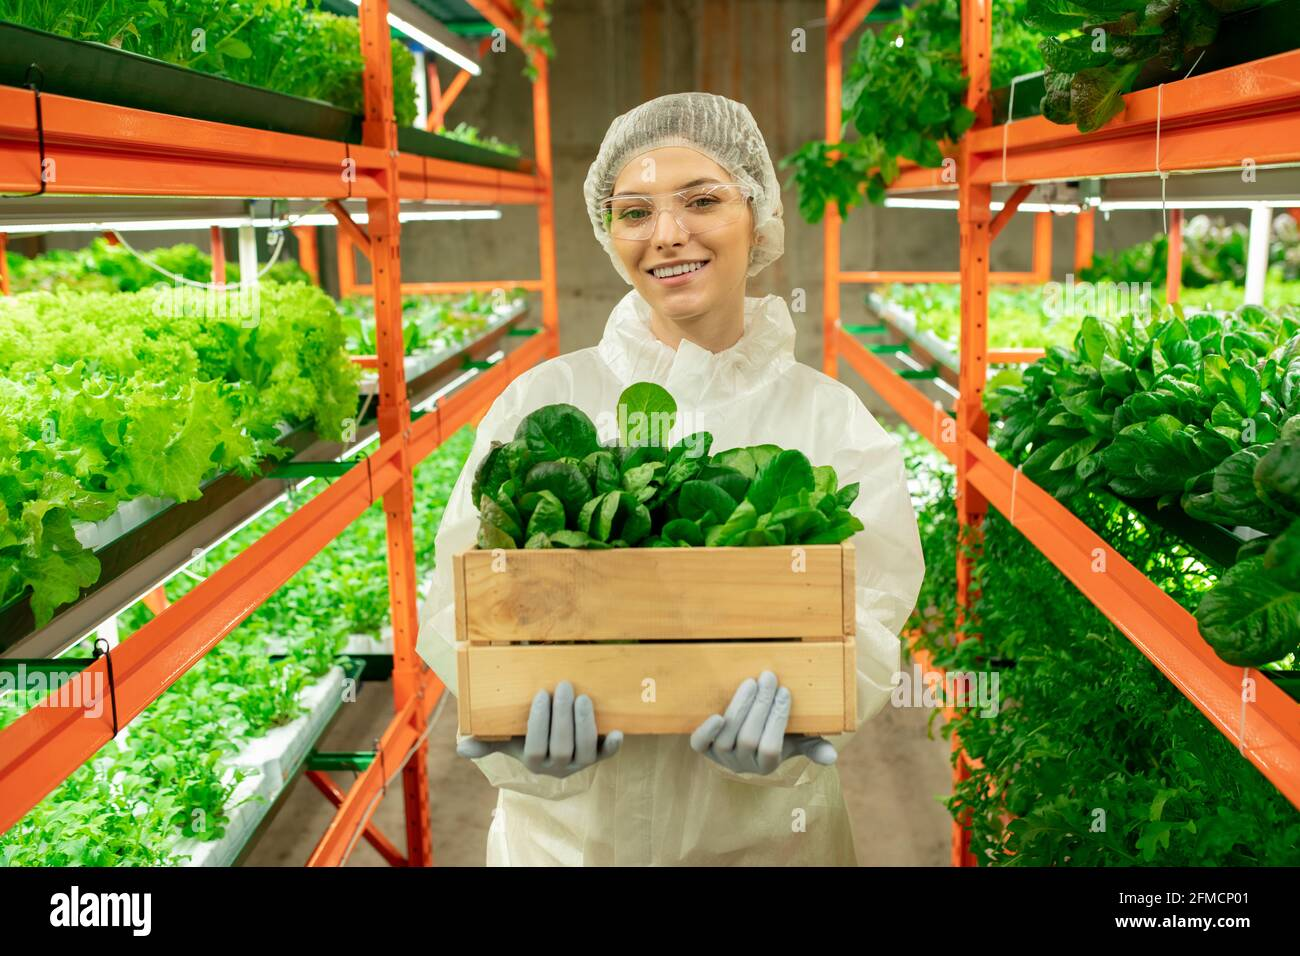 Portrait of cheerful young greenhouse employee in protective workwear and goggles holding box of seedlings in aisle of vertical farm Stock Photo